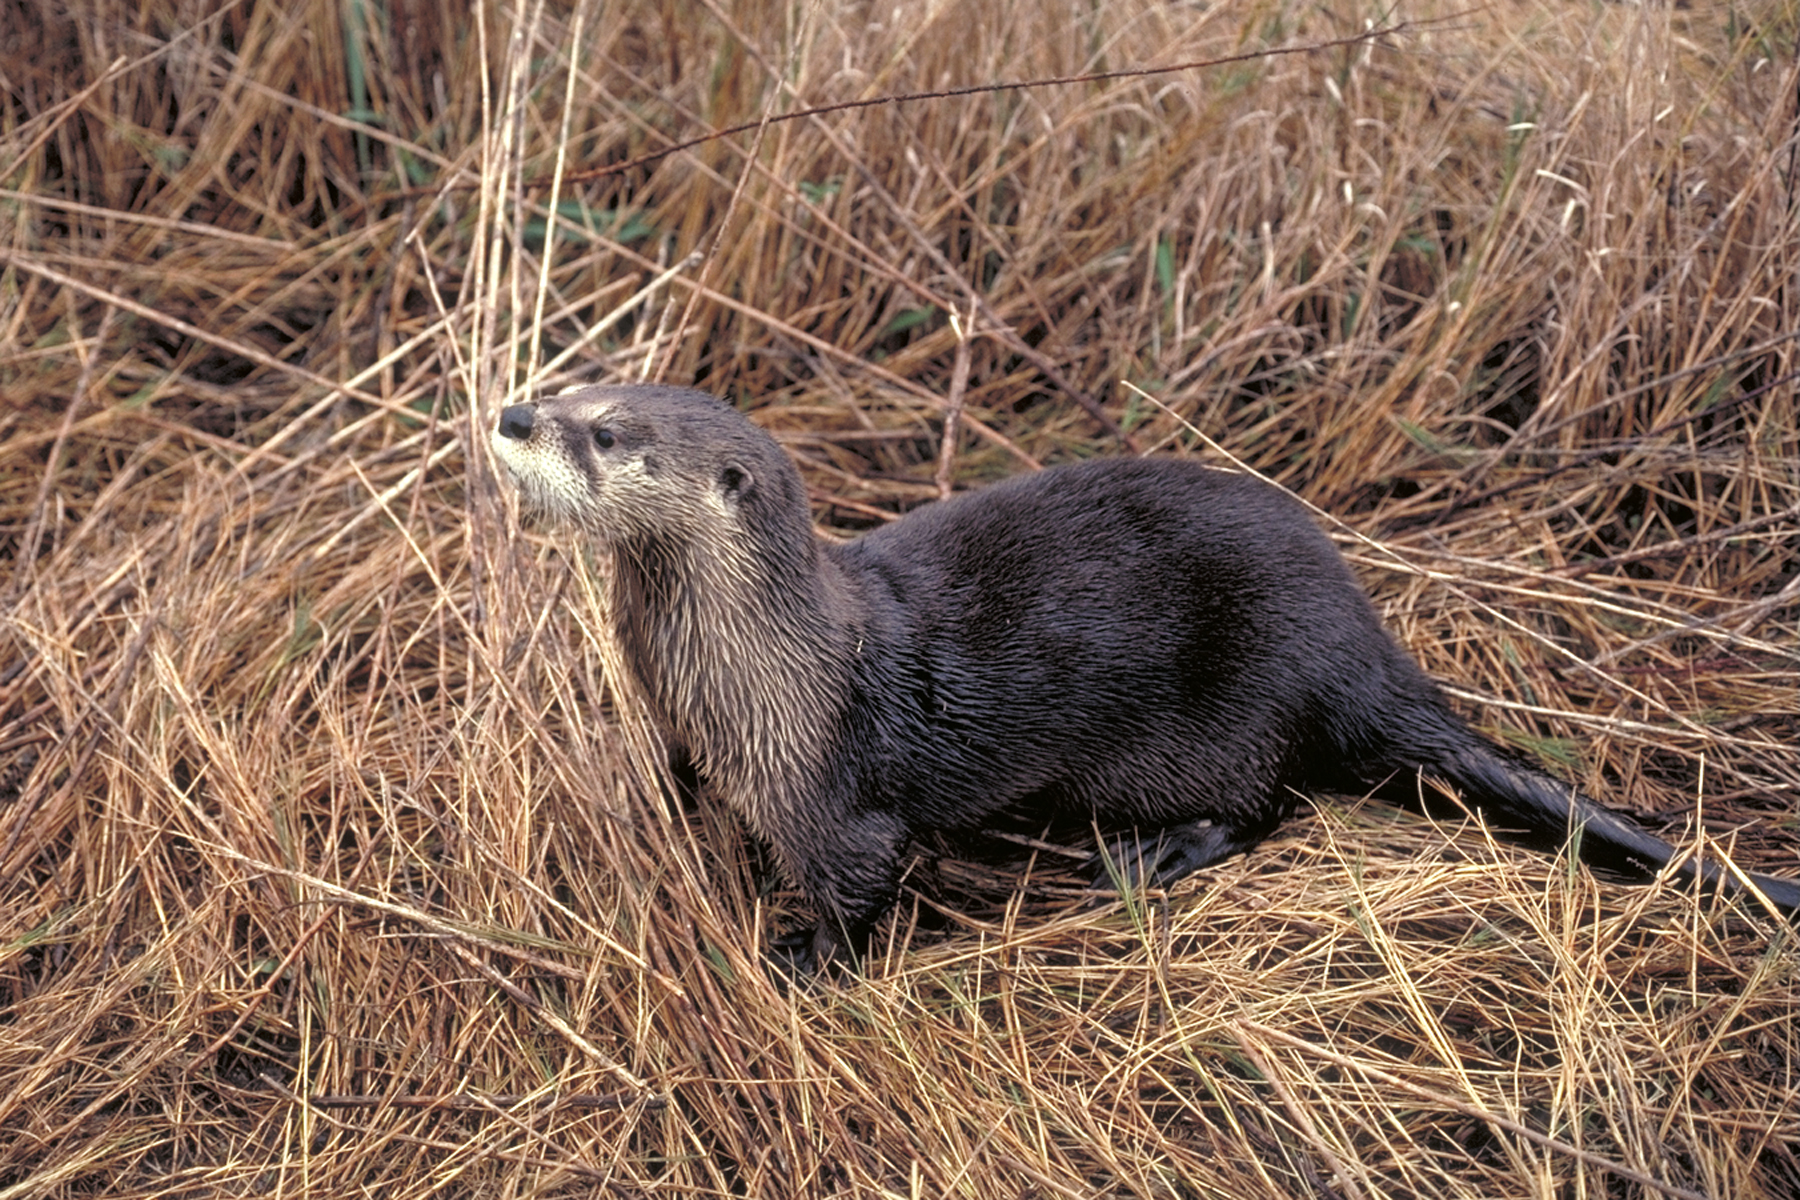 Help Texas river otters by encouraging your water supplier to adopt proactive drought response plans